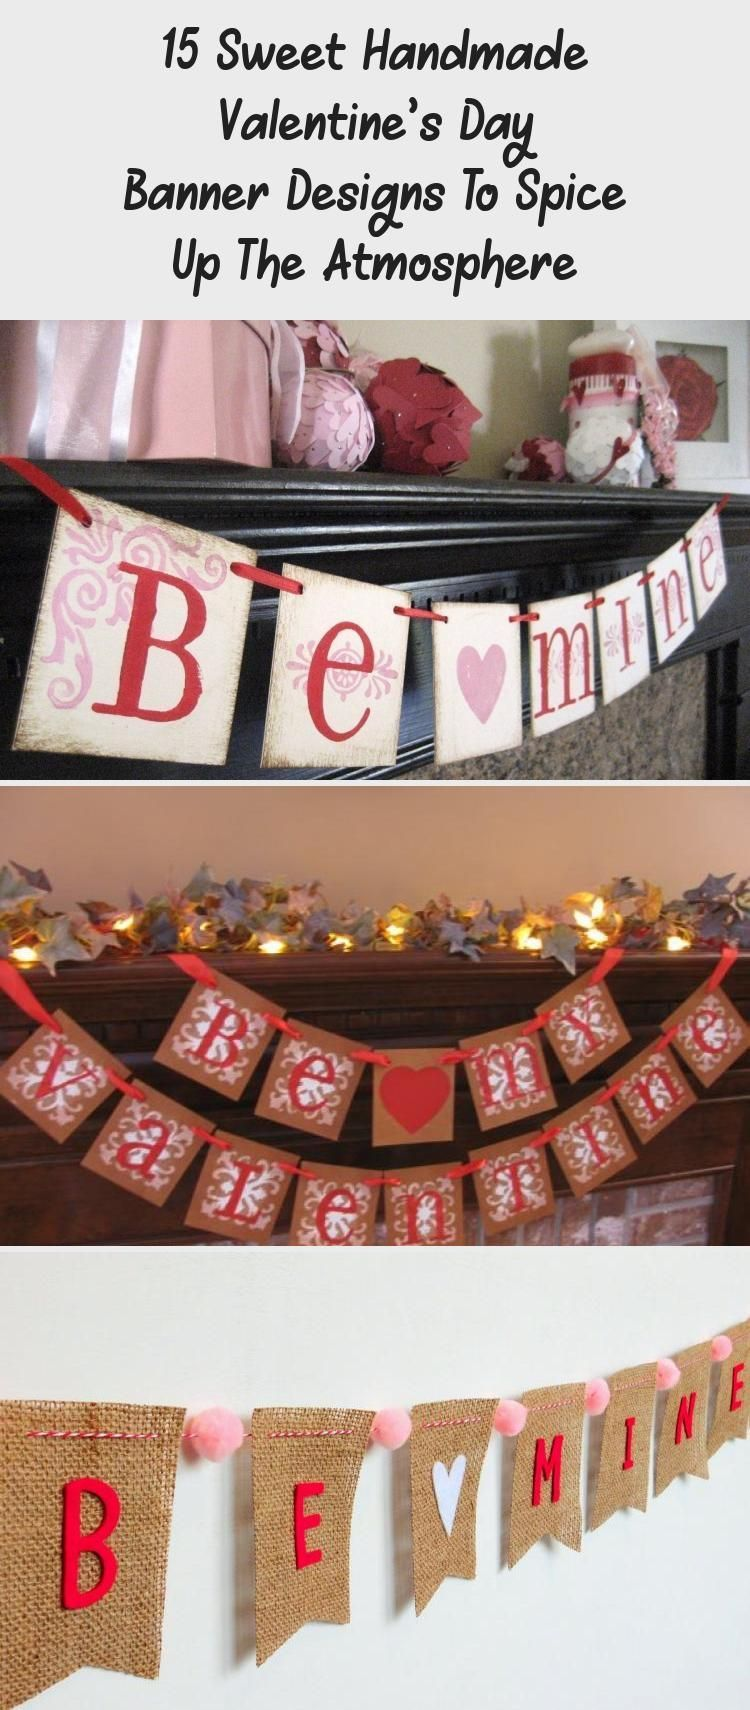 15 Sweet Handmade Valentines Day Banner Designs To Spice Up The Atmosphere Burlapbanner Travelbann 15 Sweet Handmade Valentines Day Banner Designs To Spice Up The Atmosph...